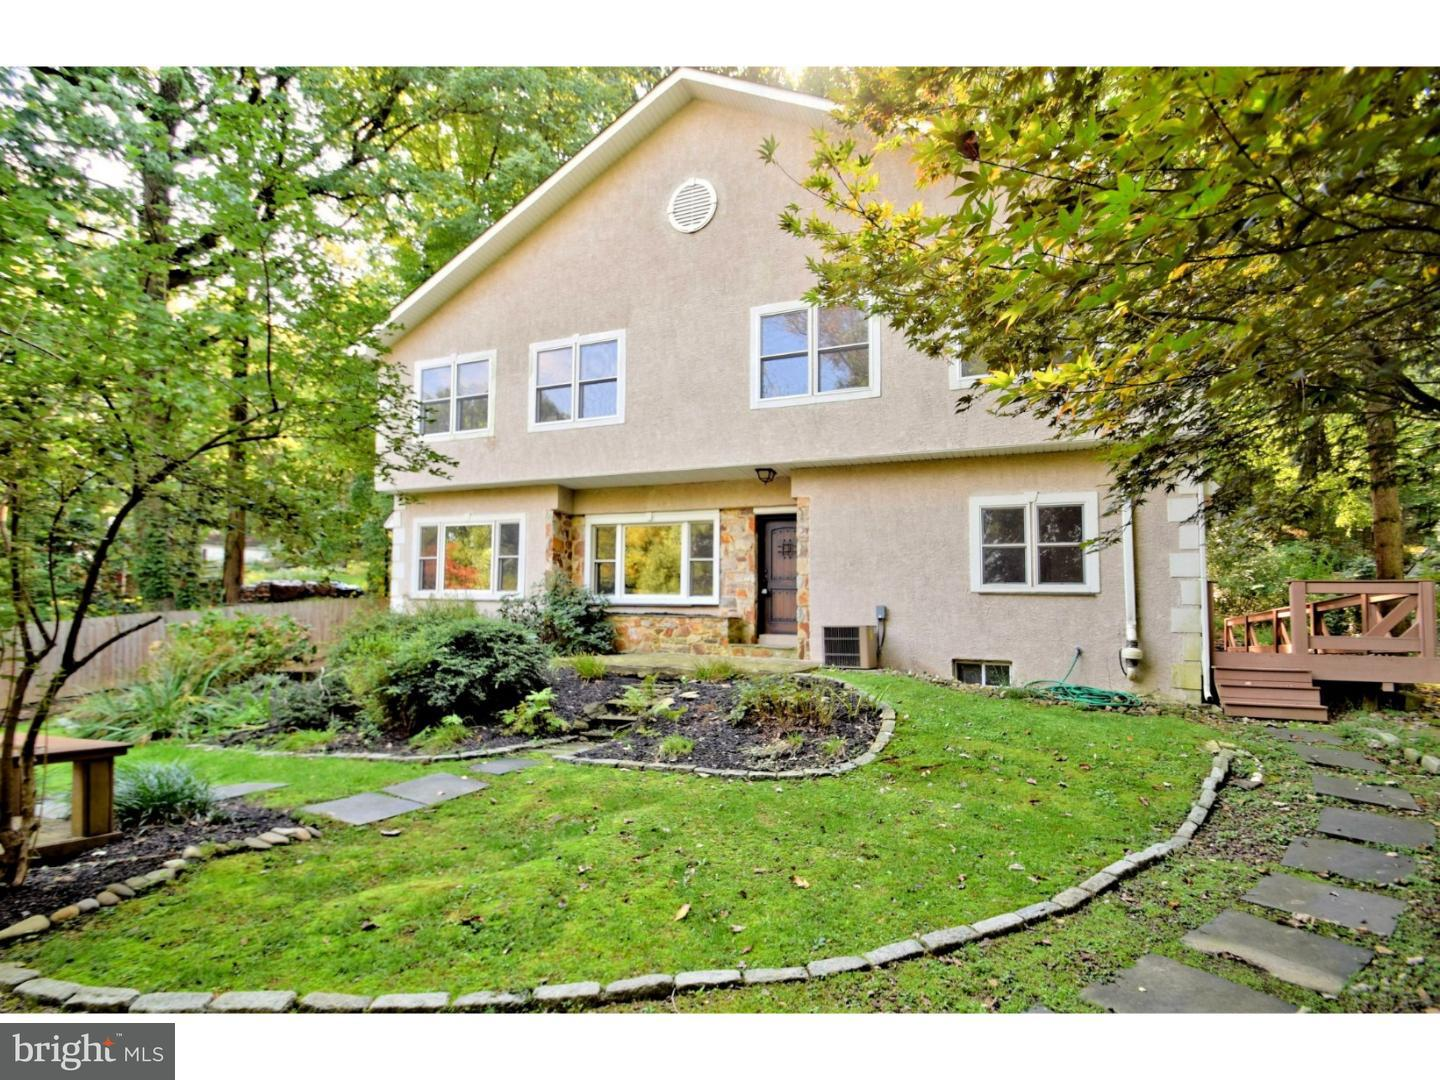 Single Family Home for Sale at 403 WEADLEY Road King Of Prussia, Pennsylvania 19406 United States